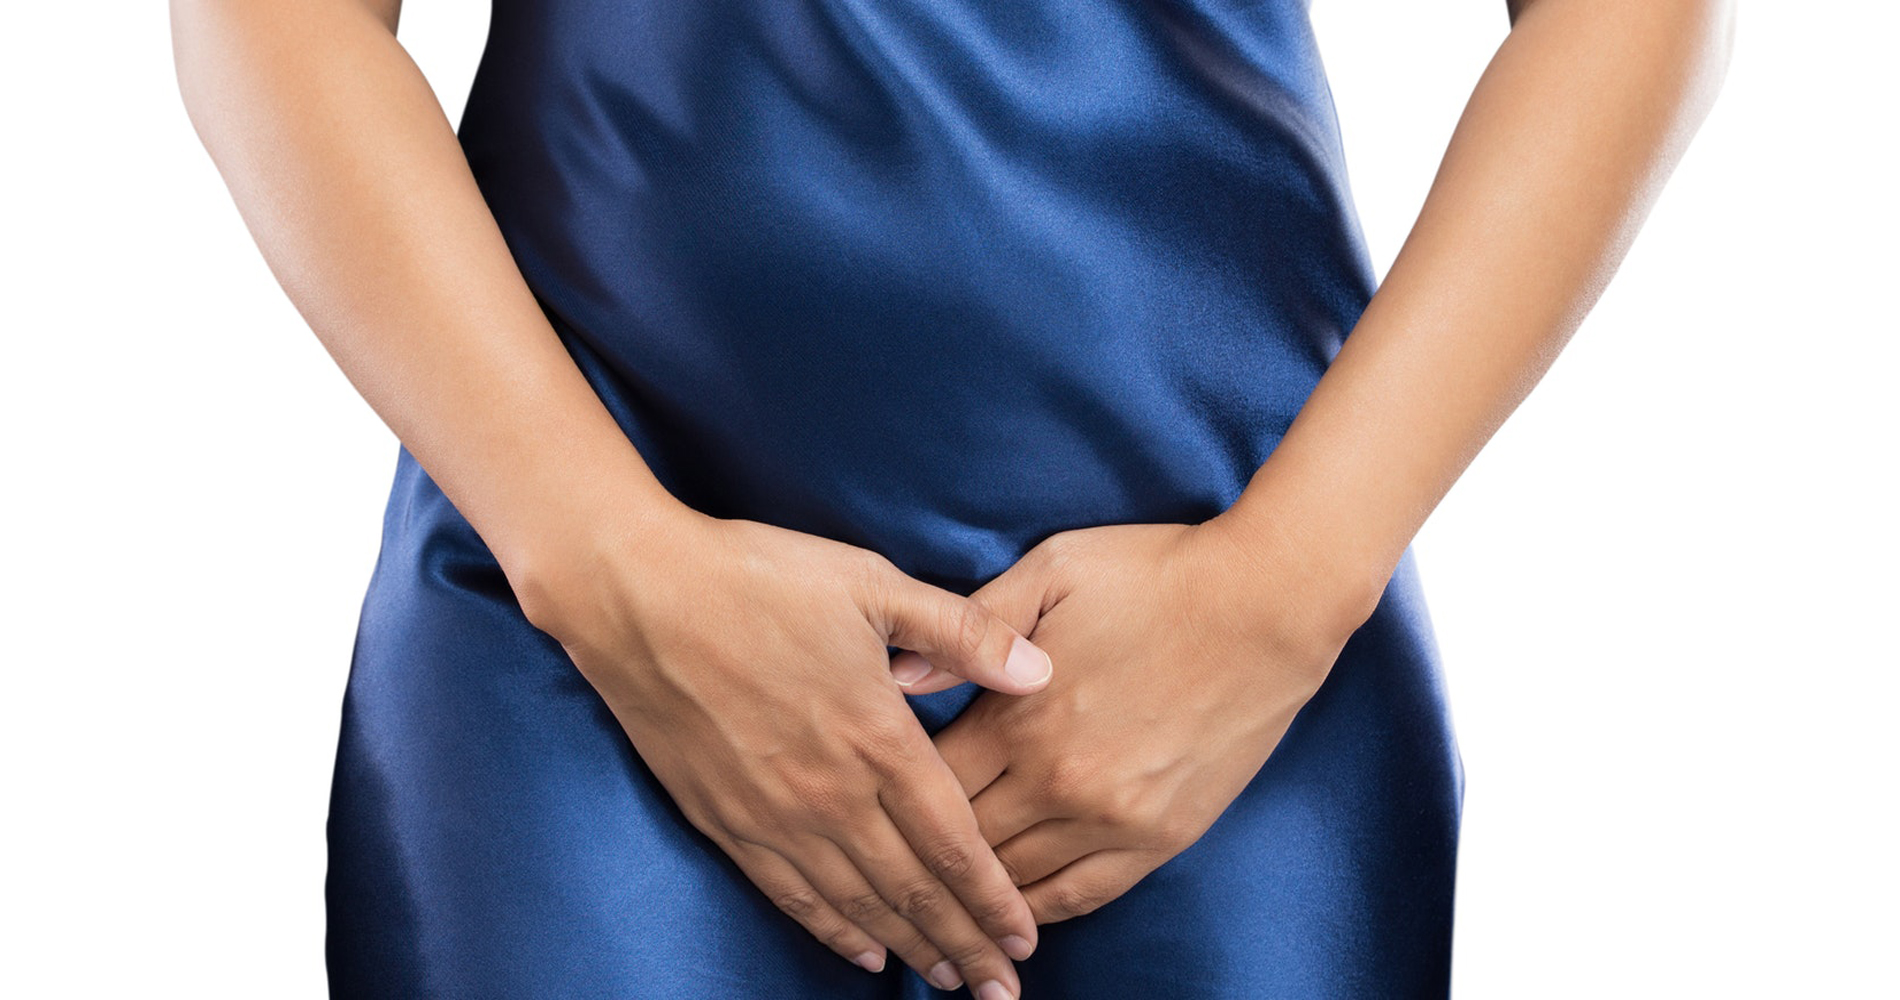 Vaginal Yeast Infection: Symptoms, Causes and Treatments